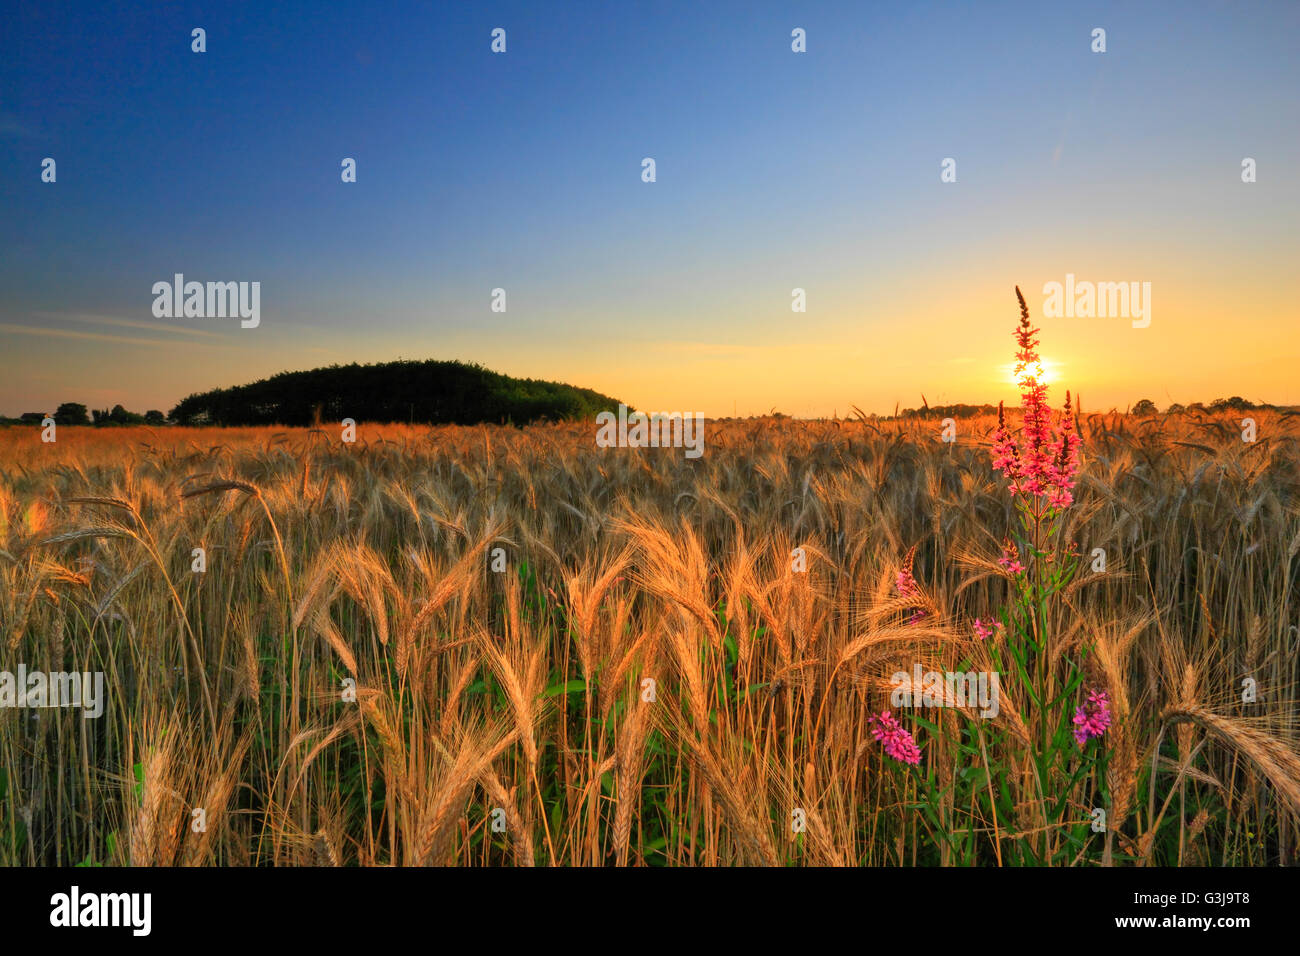 Sunset in the wheat field - Stock Image